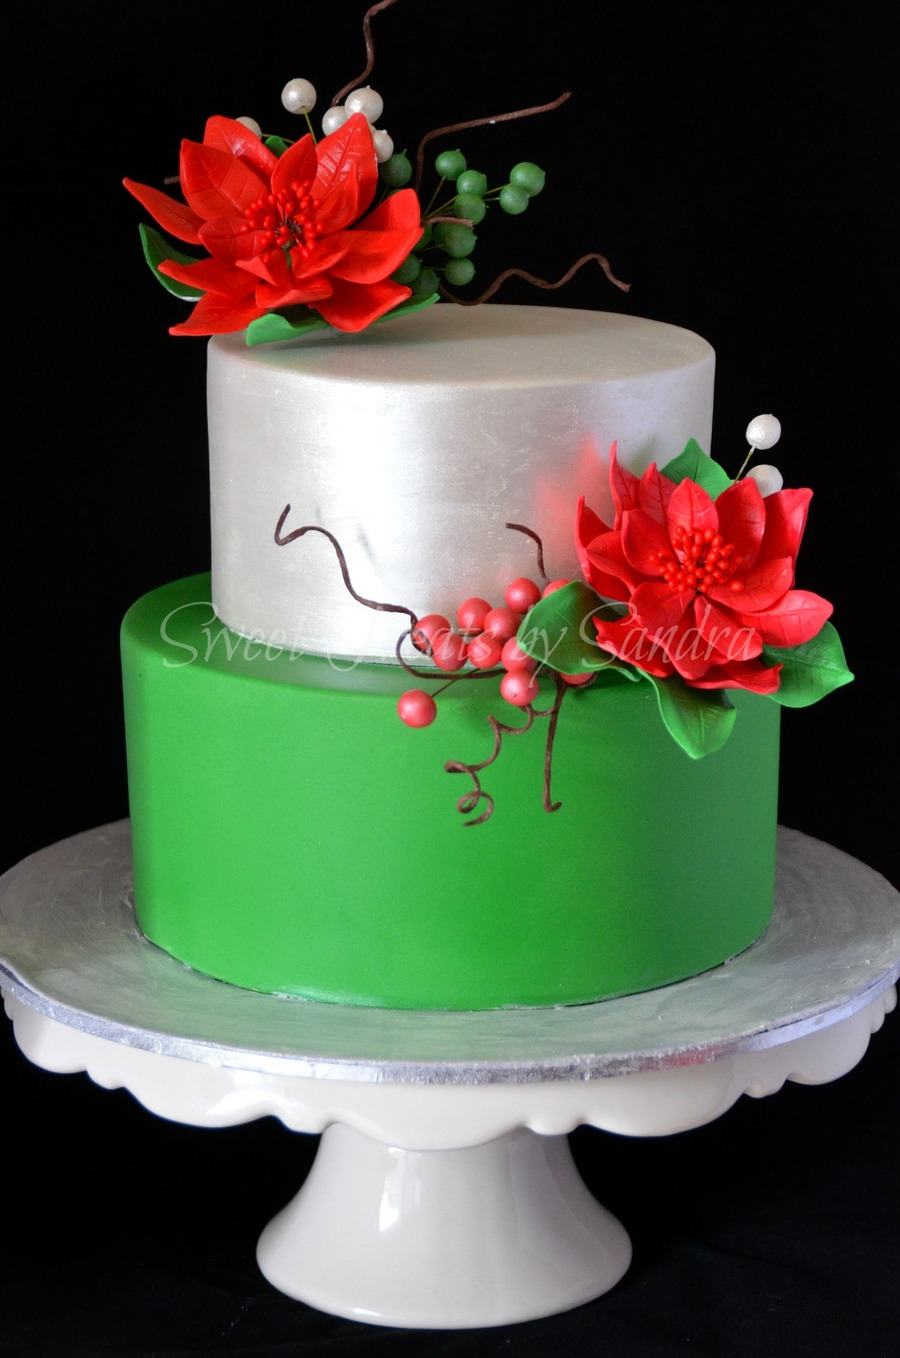 Christmas Birthday Cake.An Elegant Christmas Birthday Cake Cakecentral Com